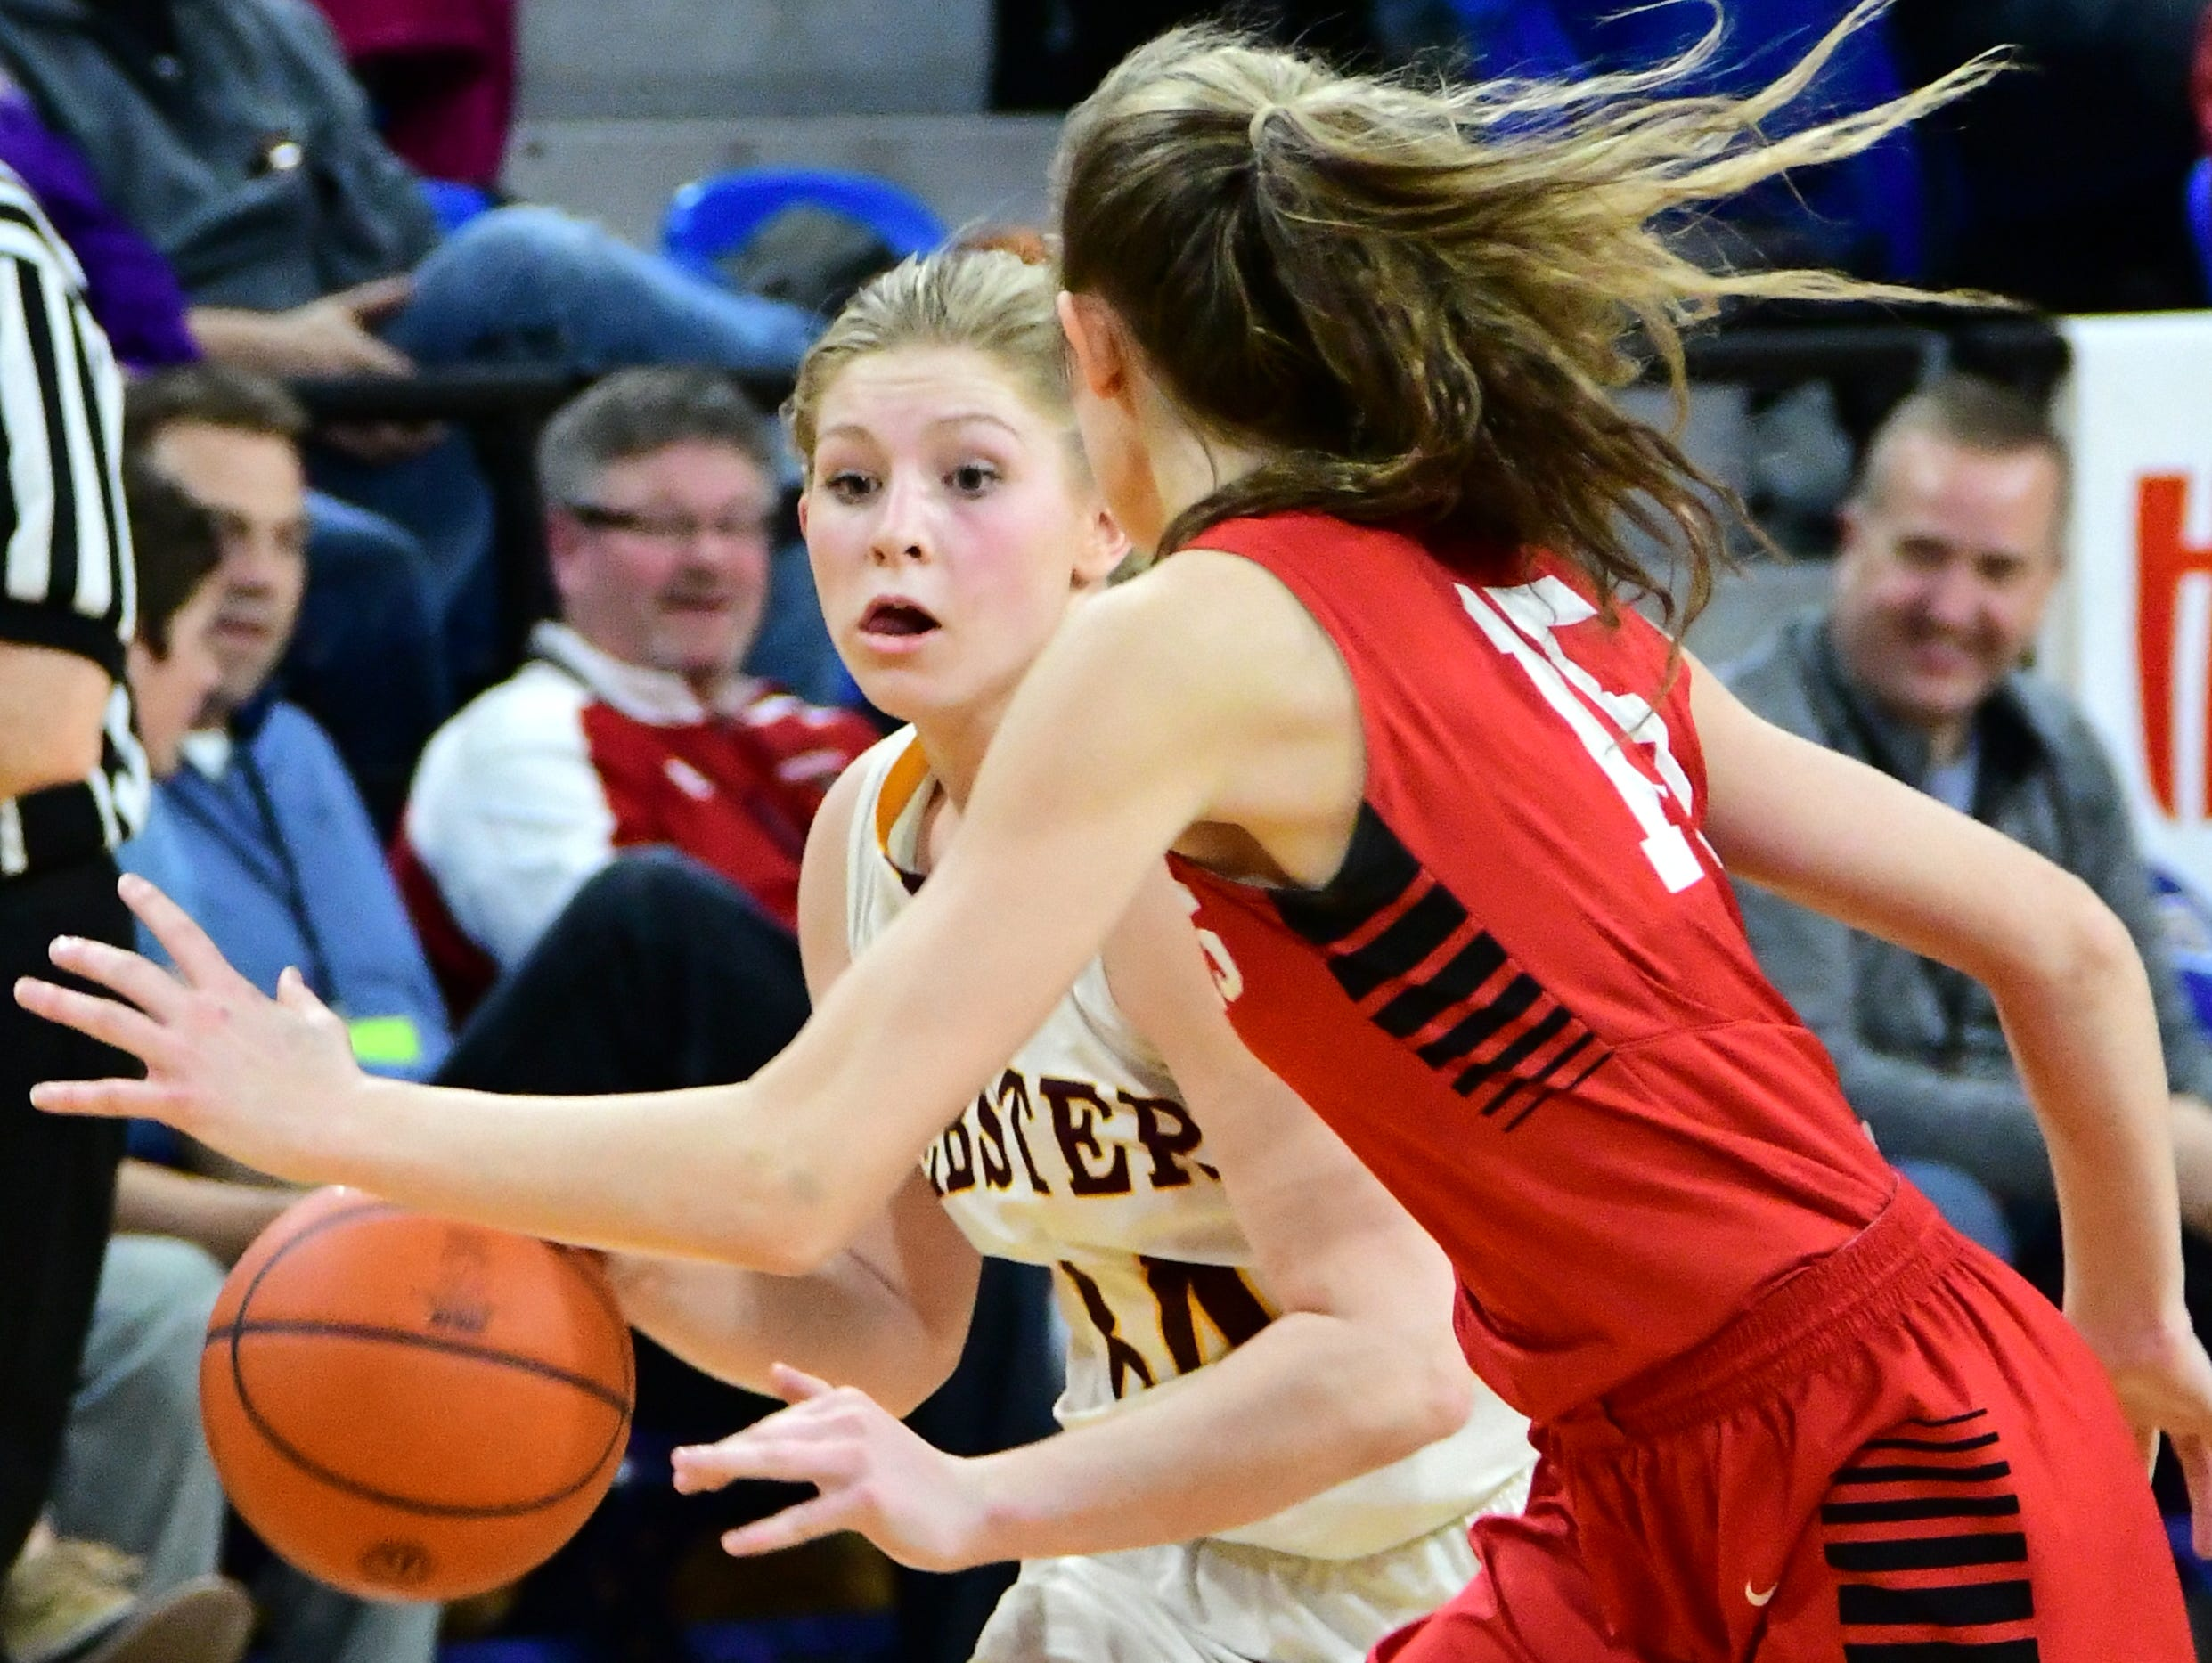 Webster's Haley Rithmiller tries to get past Vermillion's Kasey Herbster during the Class A girls 3rd place game Saturday at Frost Arena.